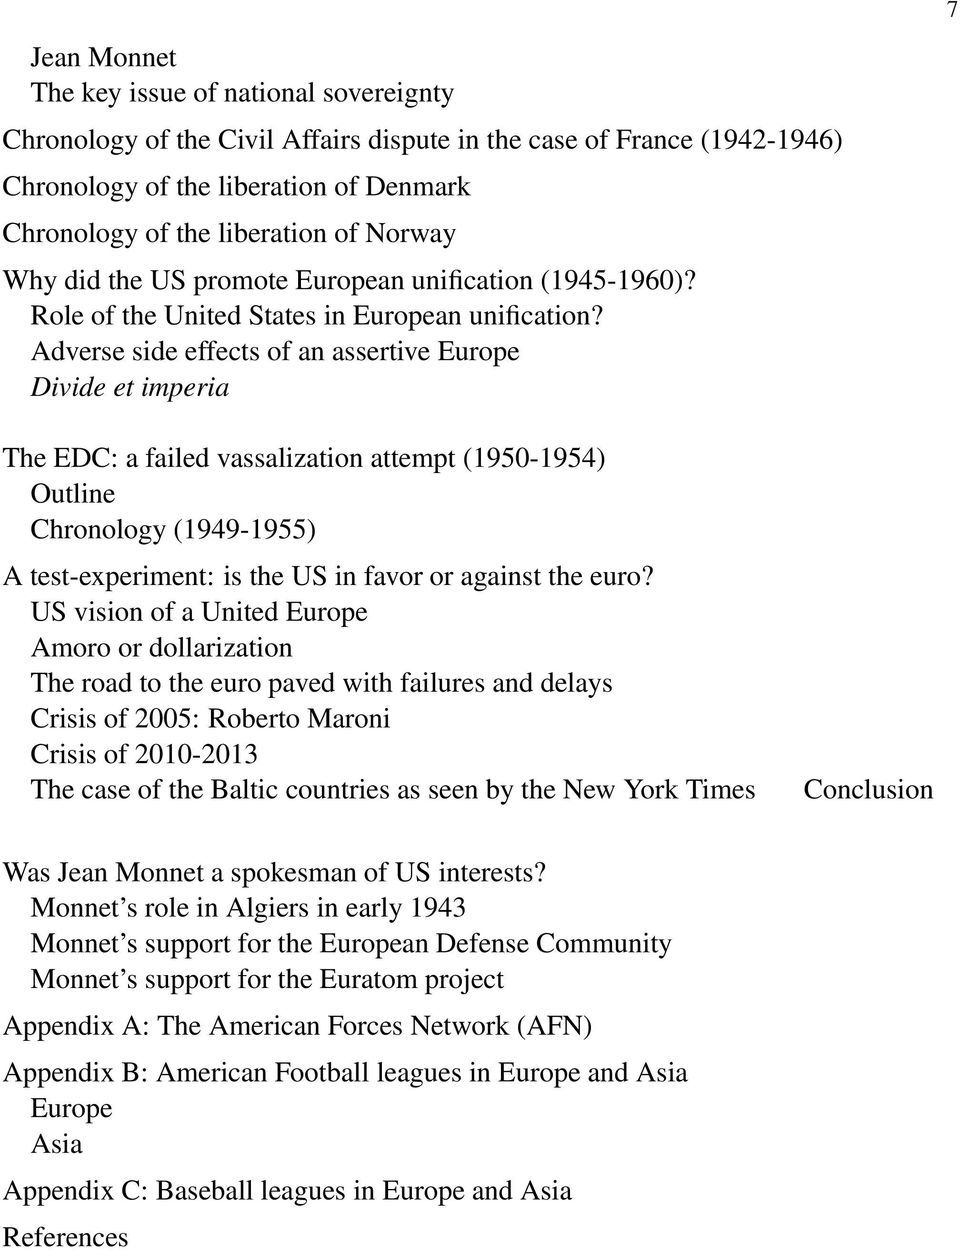 Adverse side effects of an assertive Europe Divide et imperia 7 The EDC: a failed vassalization attempt (1950-1954) Outline Chronology (1949-1955) A test-experiment: is the US in favor or against the